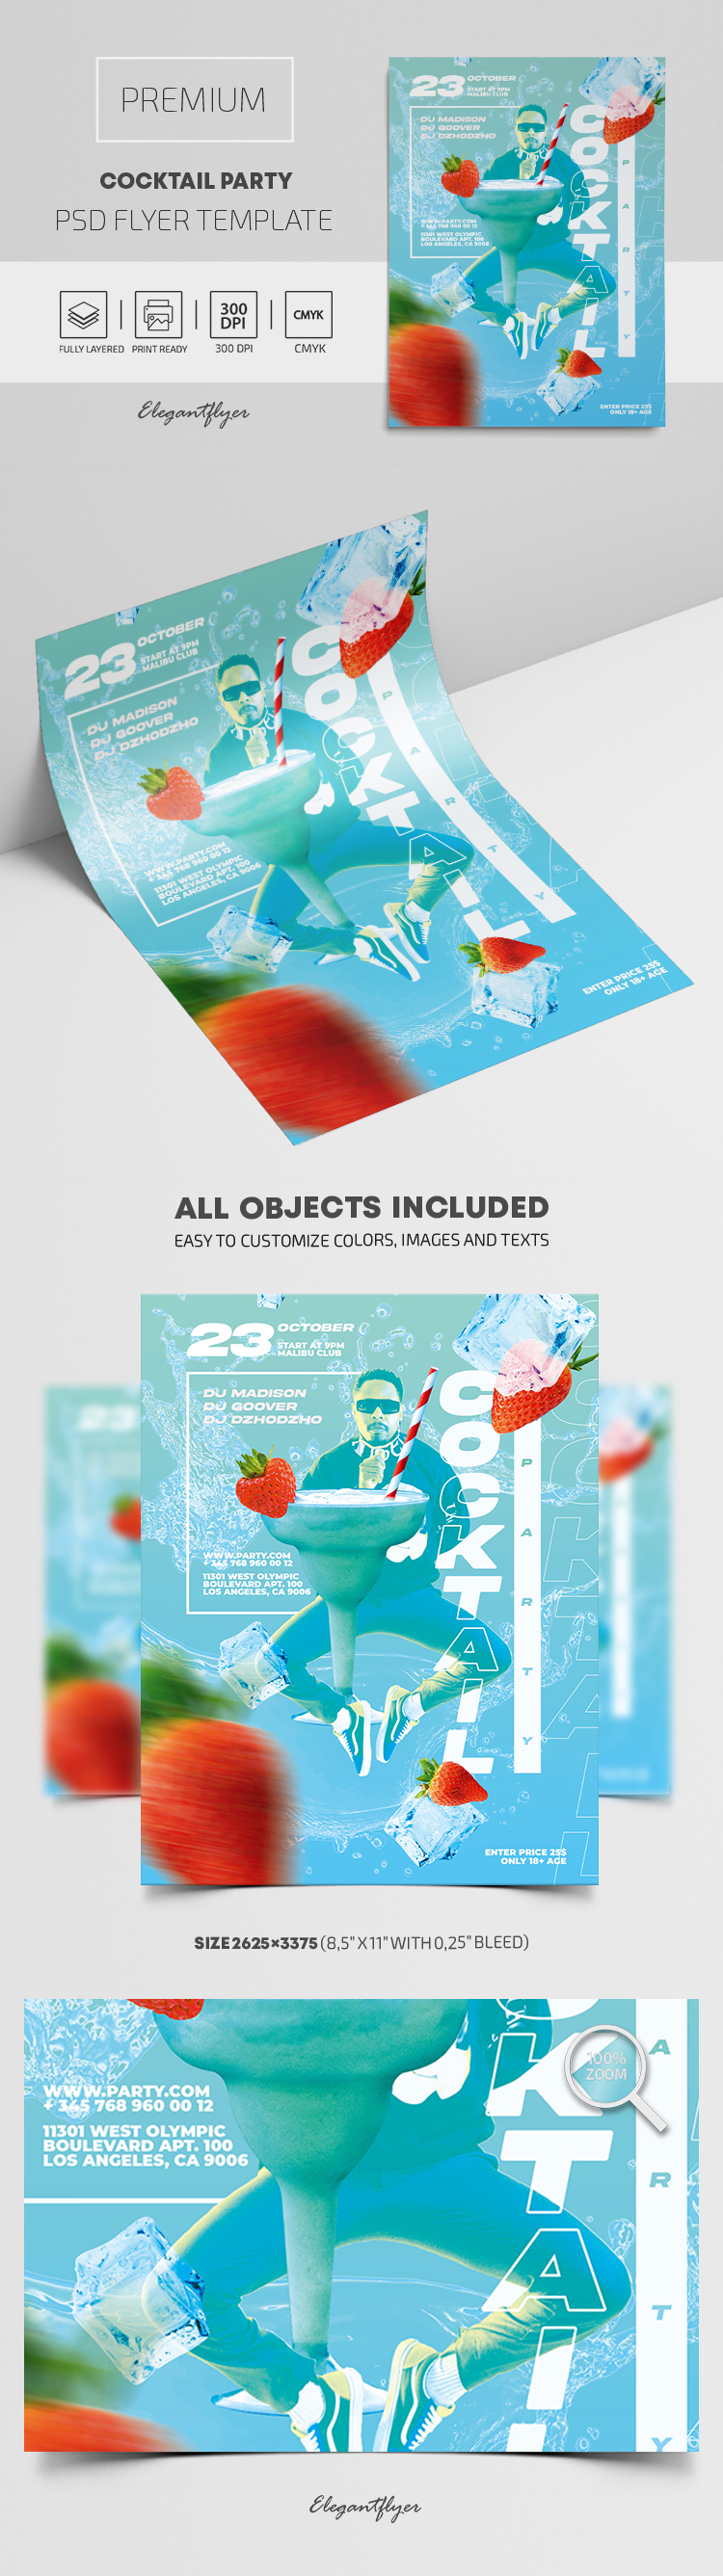 Cocktail Party – Premium PSD Flyer Template